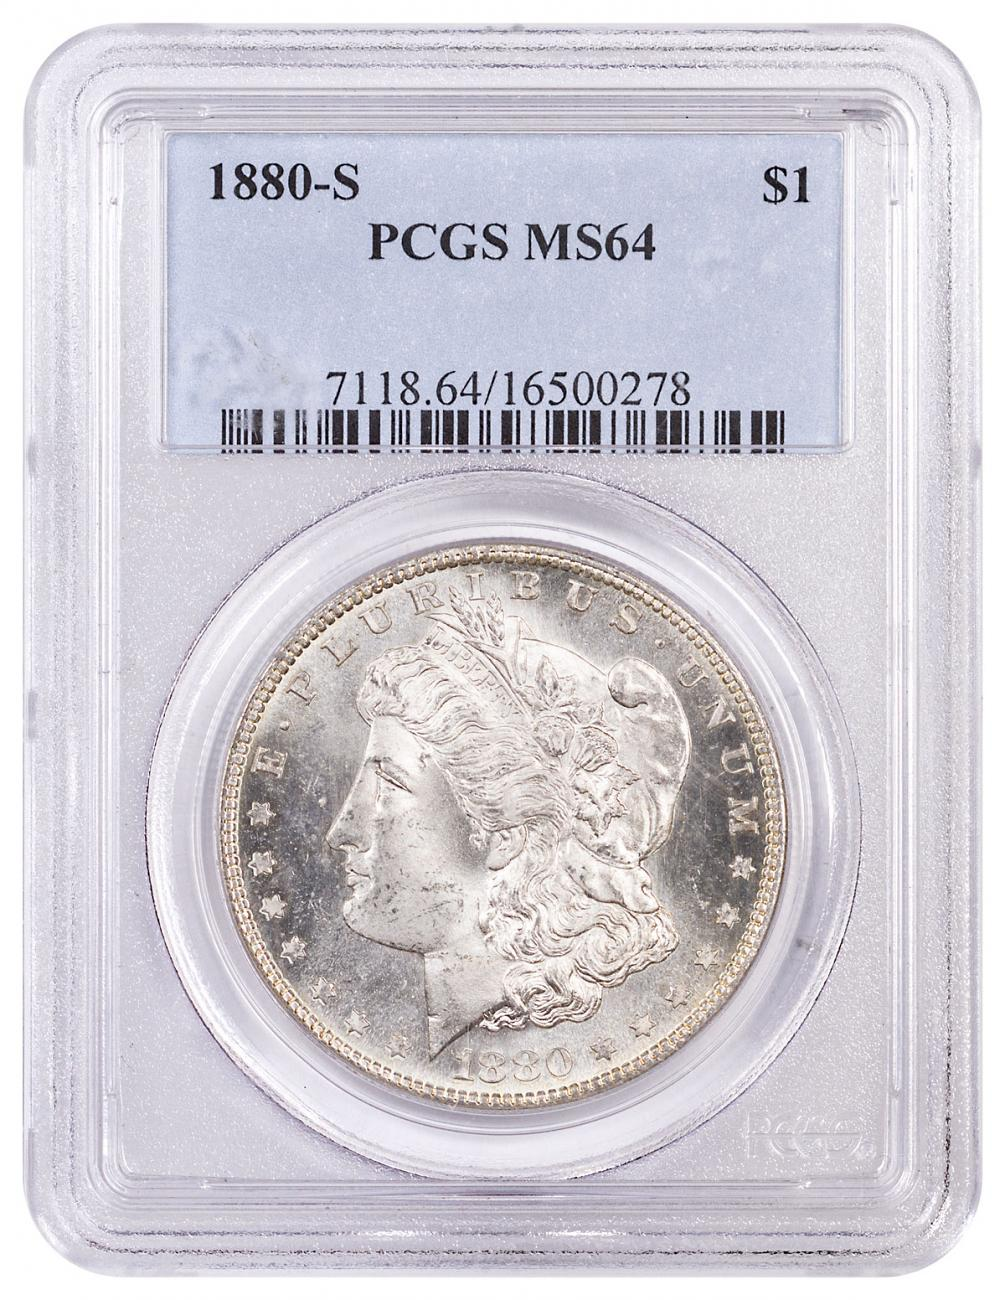 1880-S Morgan Silver Dollar PCGS MS64